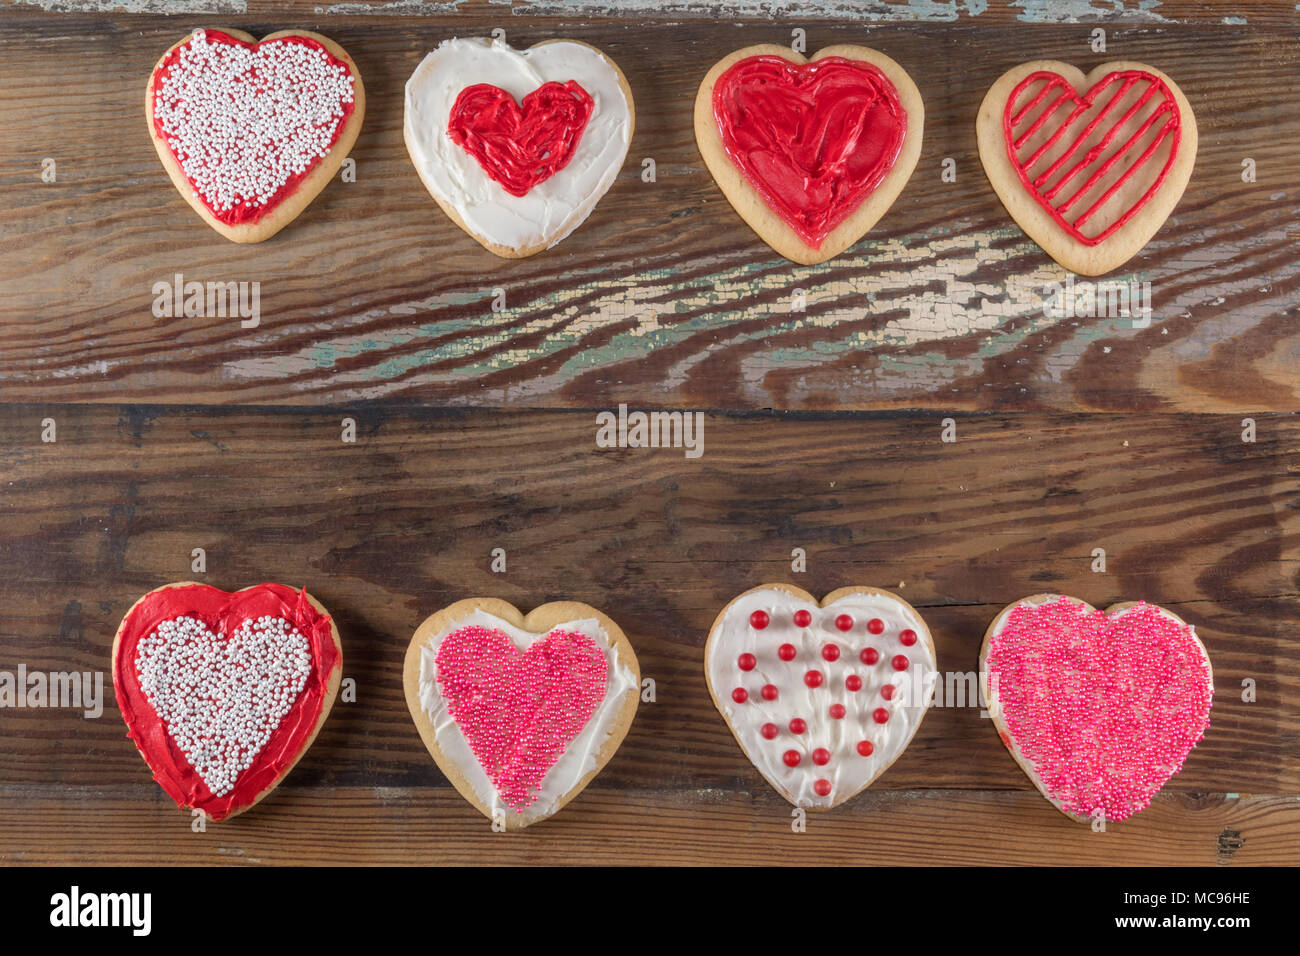 Two Lines of Decorated Heart Shaped Cookies on wooden background - Stock Image